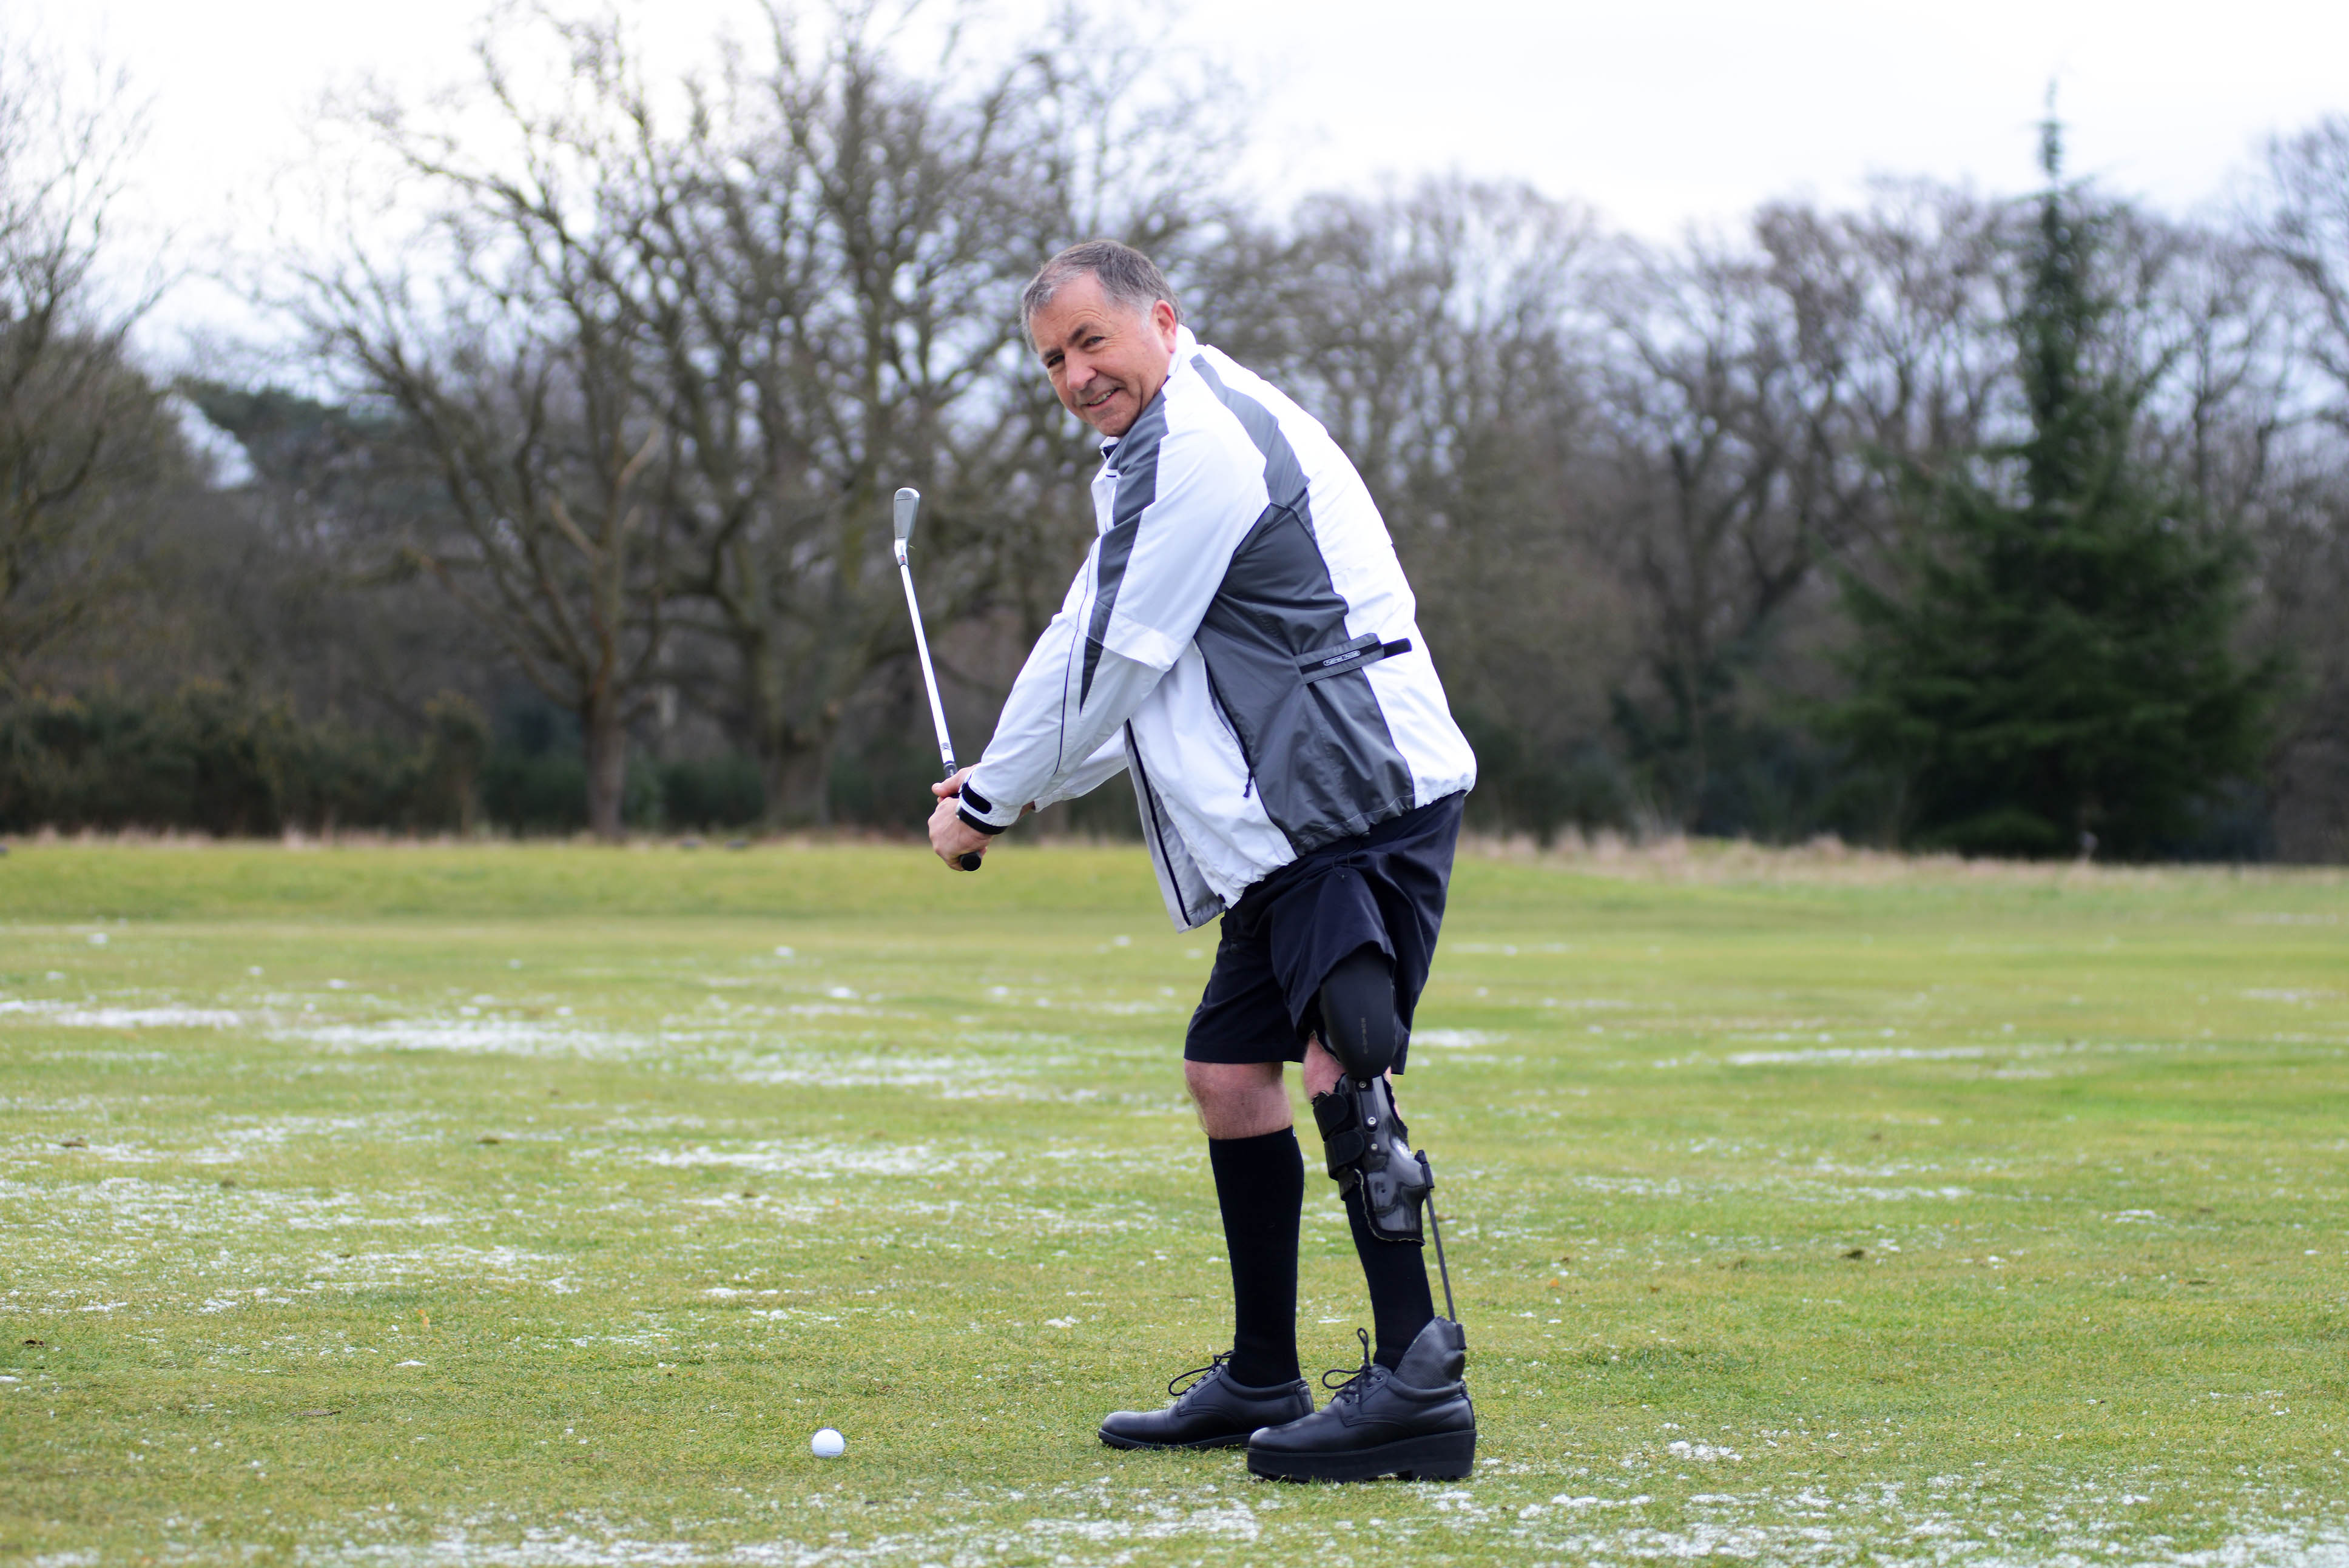 The World's First Lower-Limb Bionic Exoskeleton Launched in UK